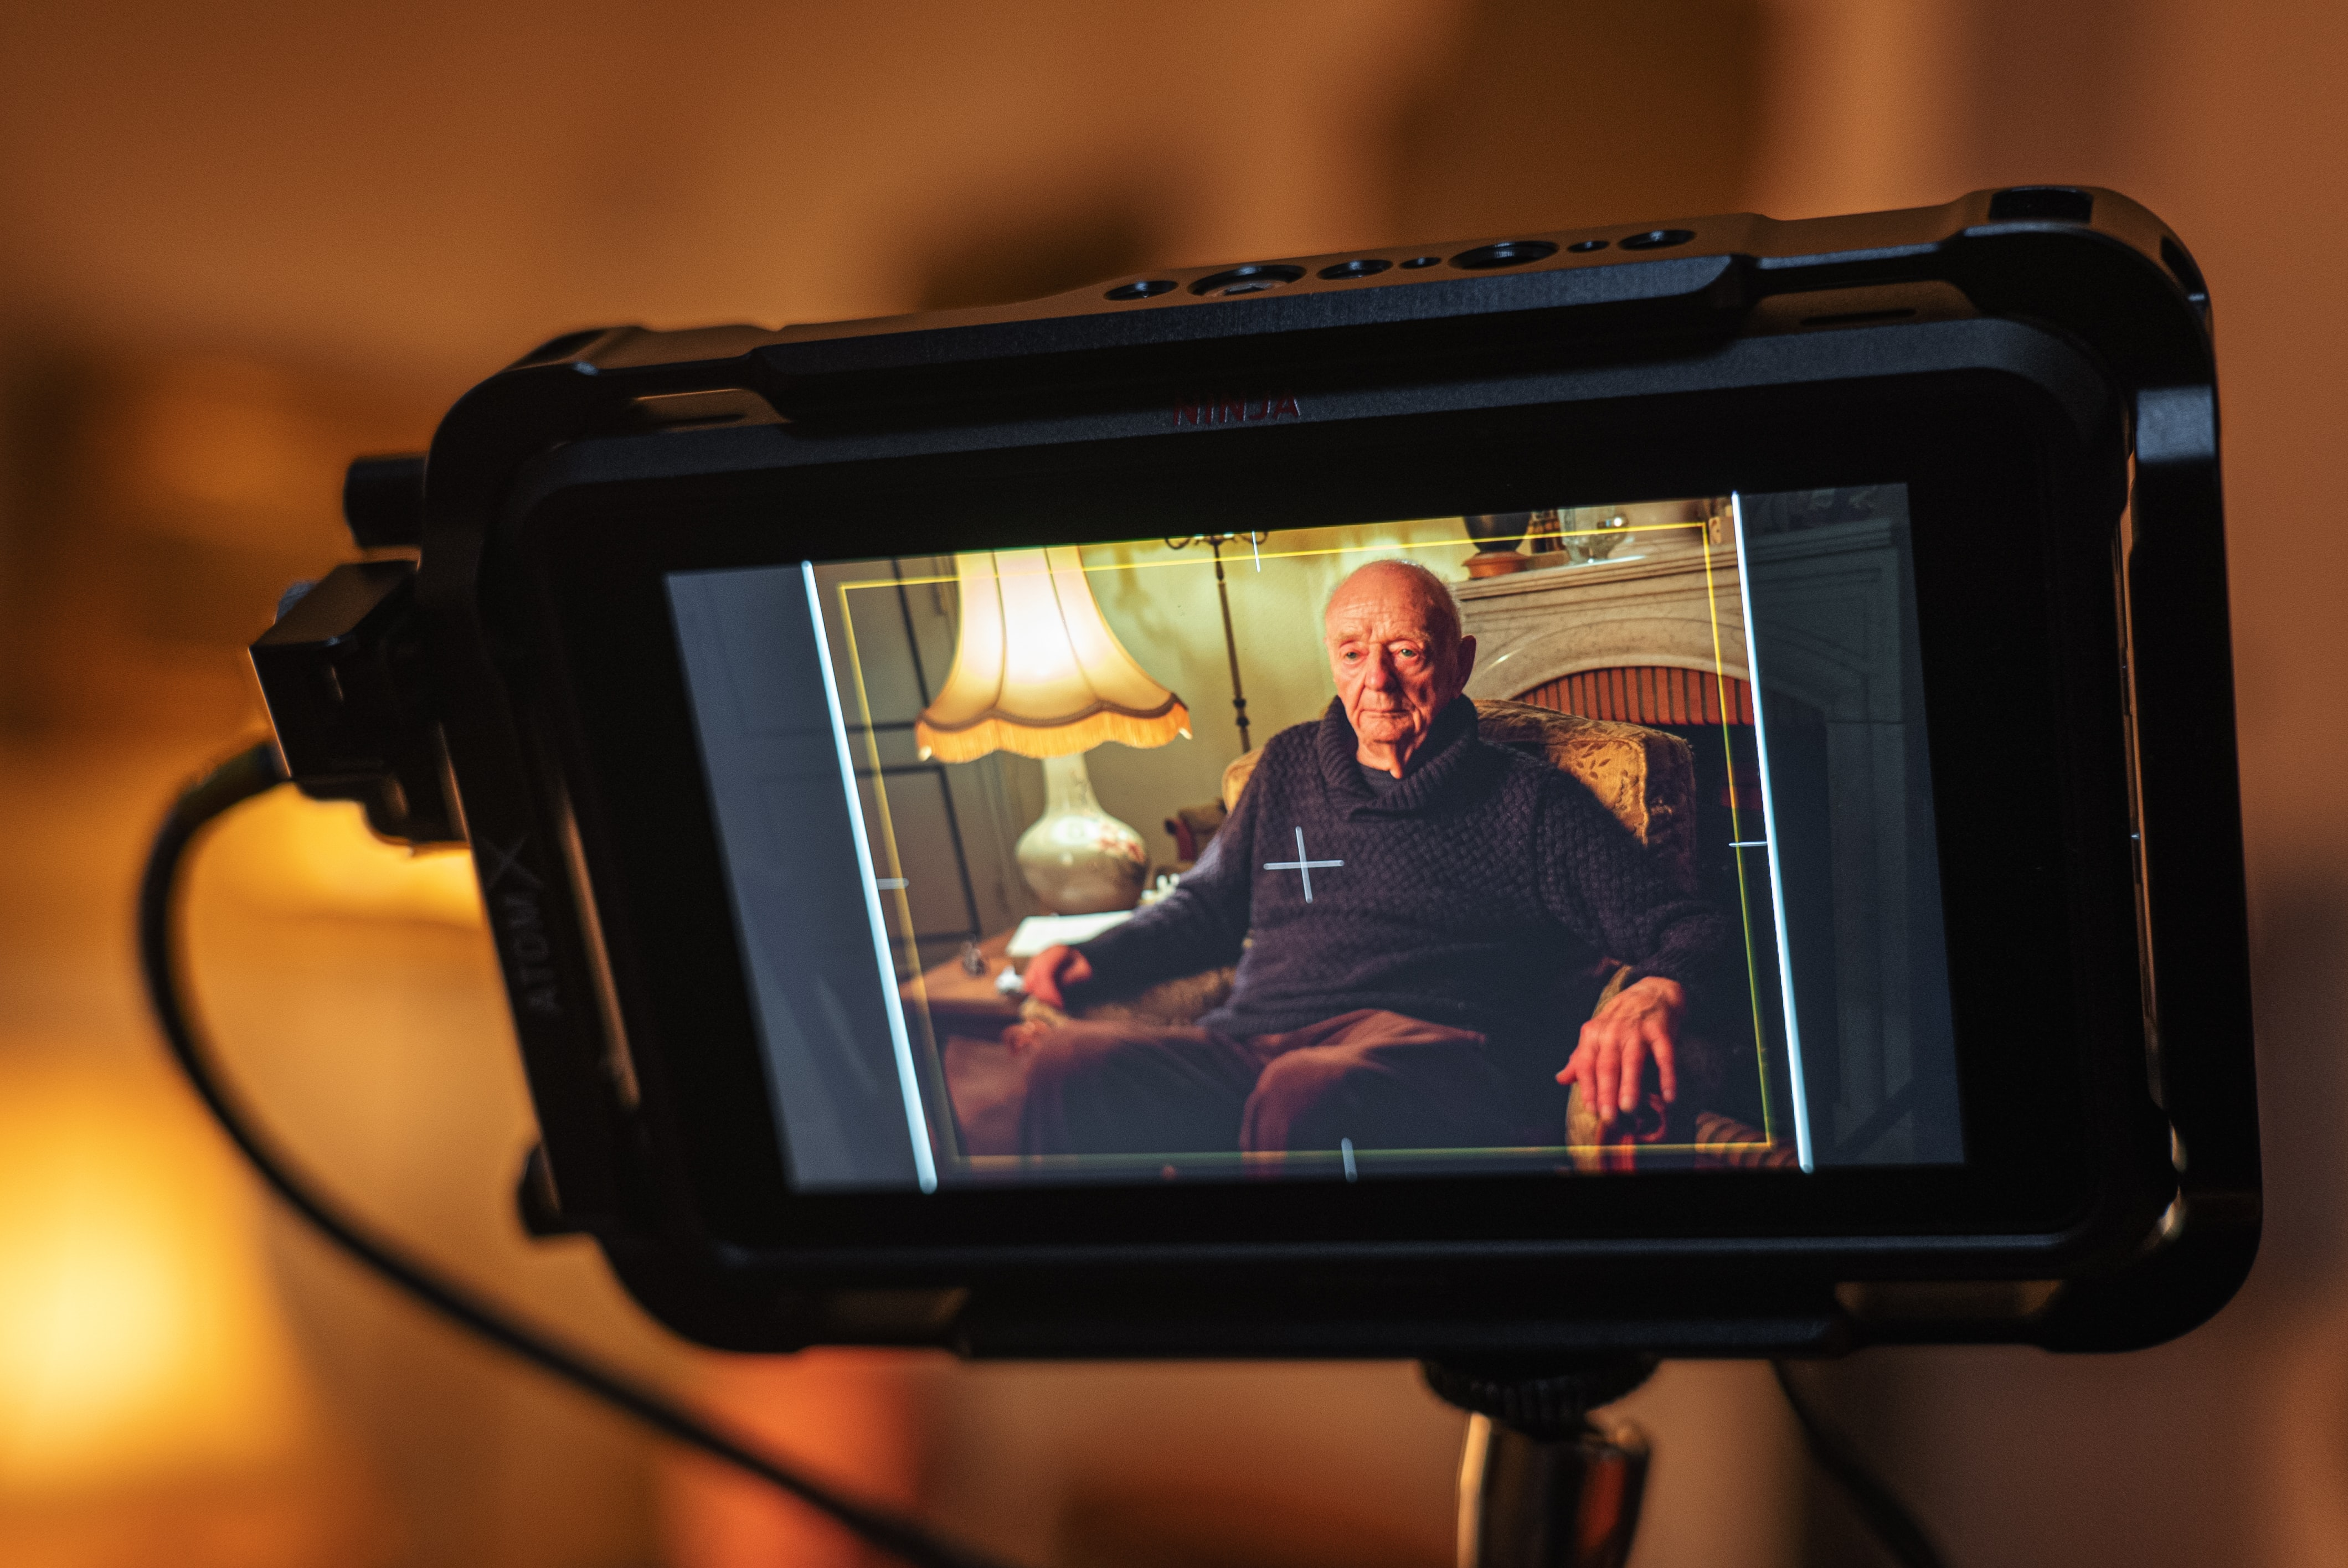 shot types and framing how to film an interview documentary indie filmmaker